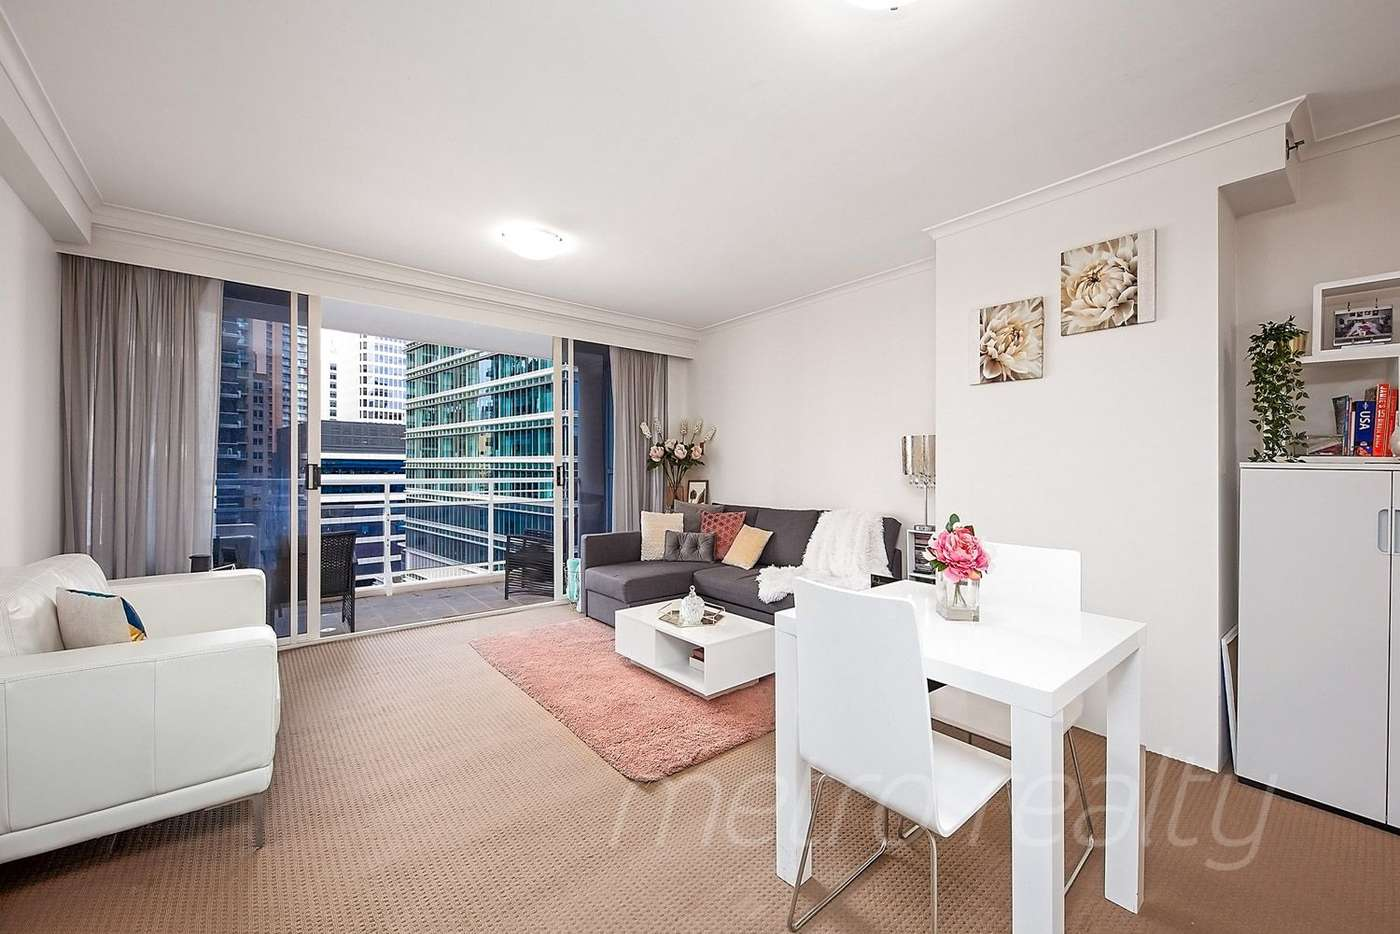 Main view of Homely apartment listing, 266/569-581 George St, Sydney NSW 2000